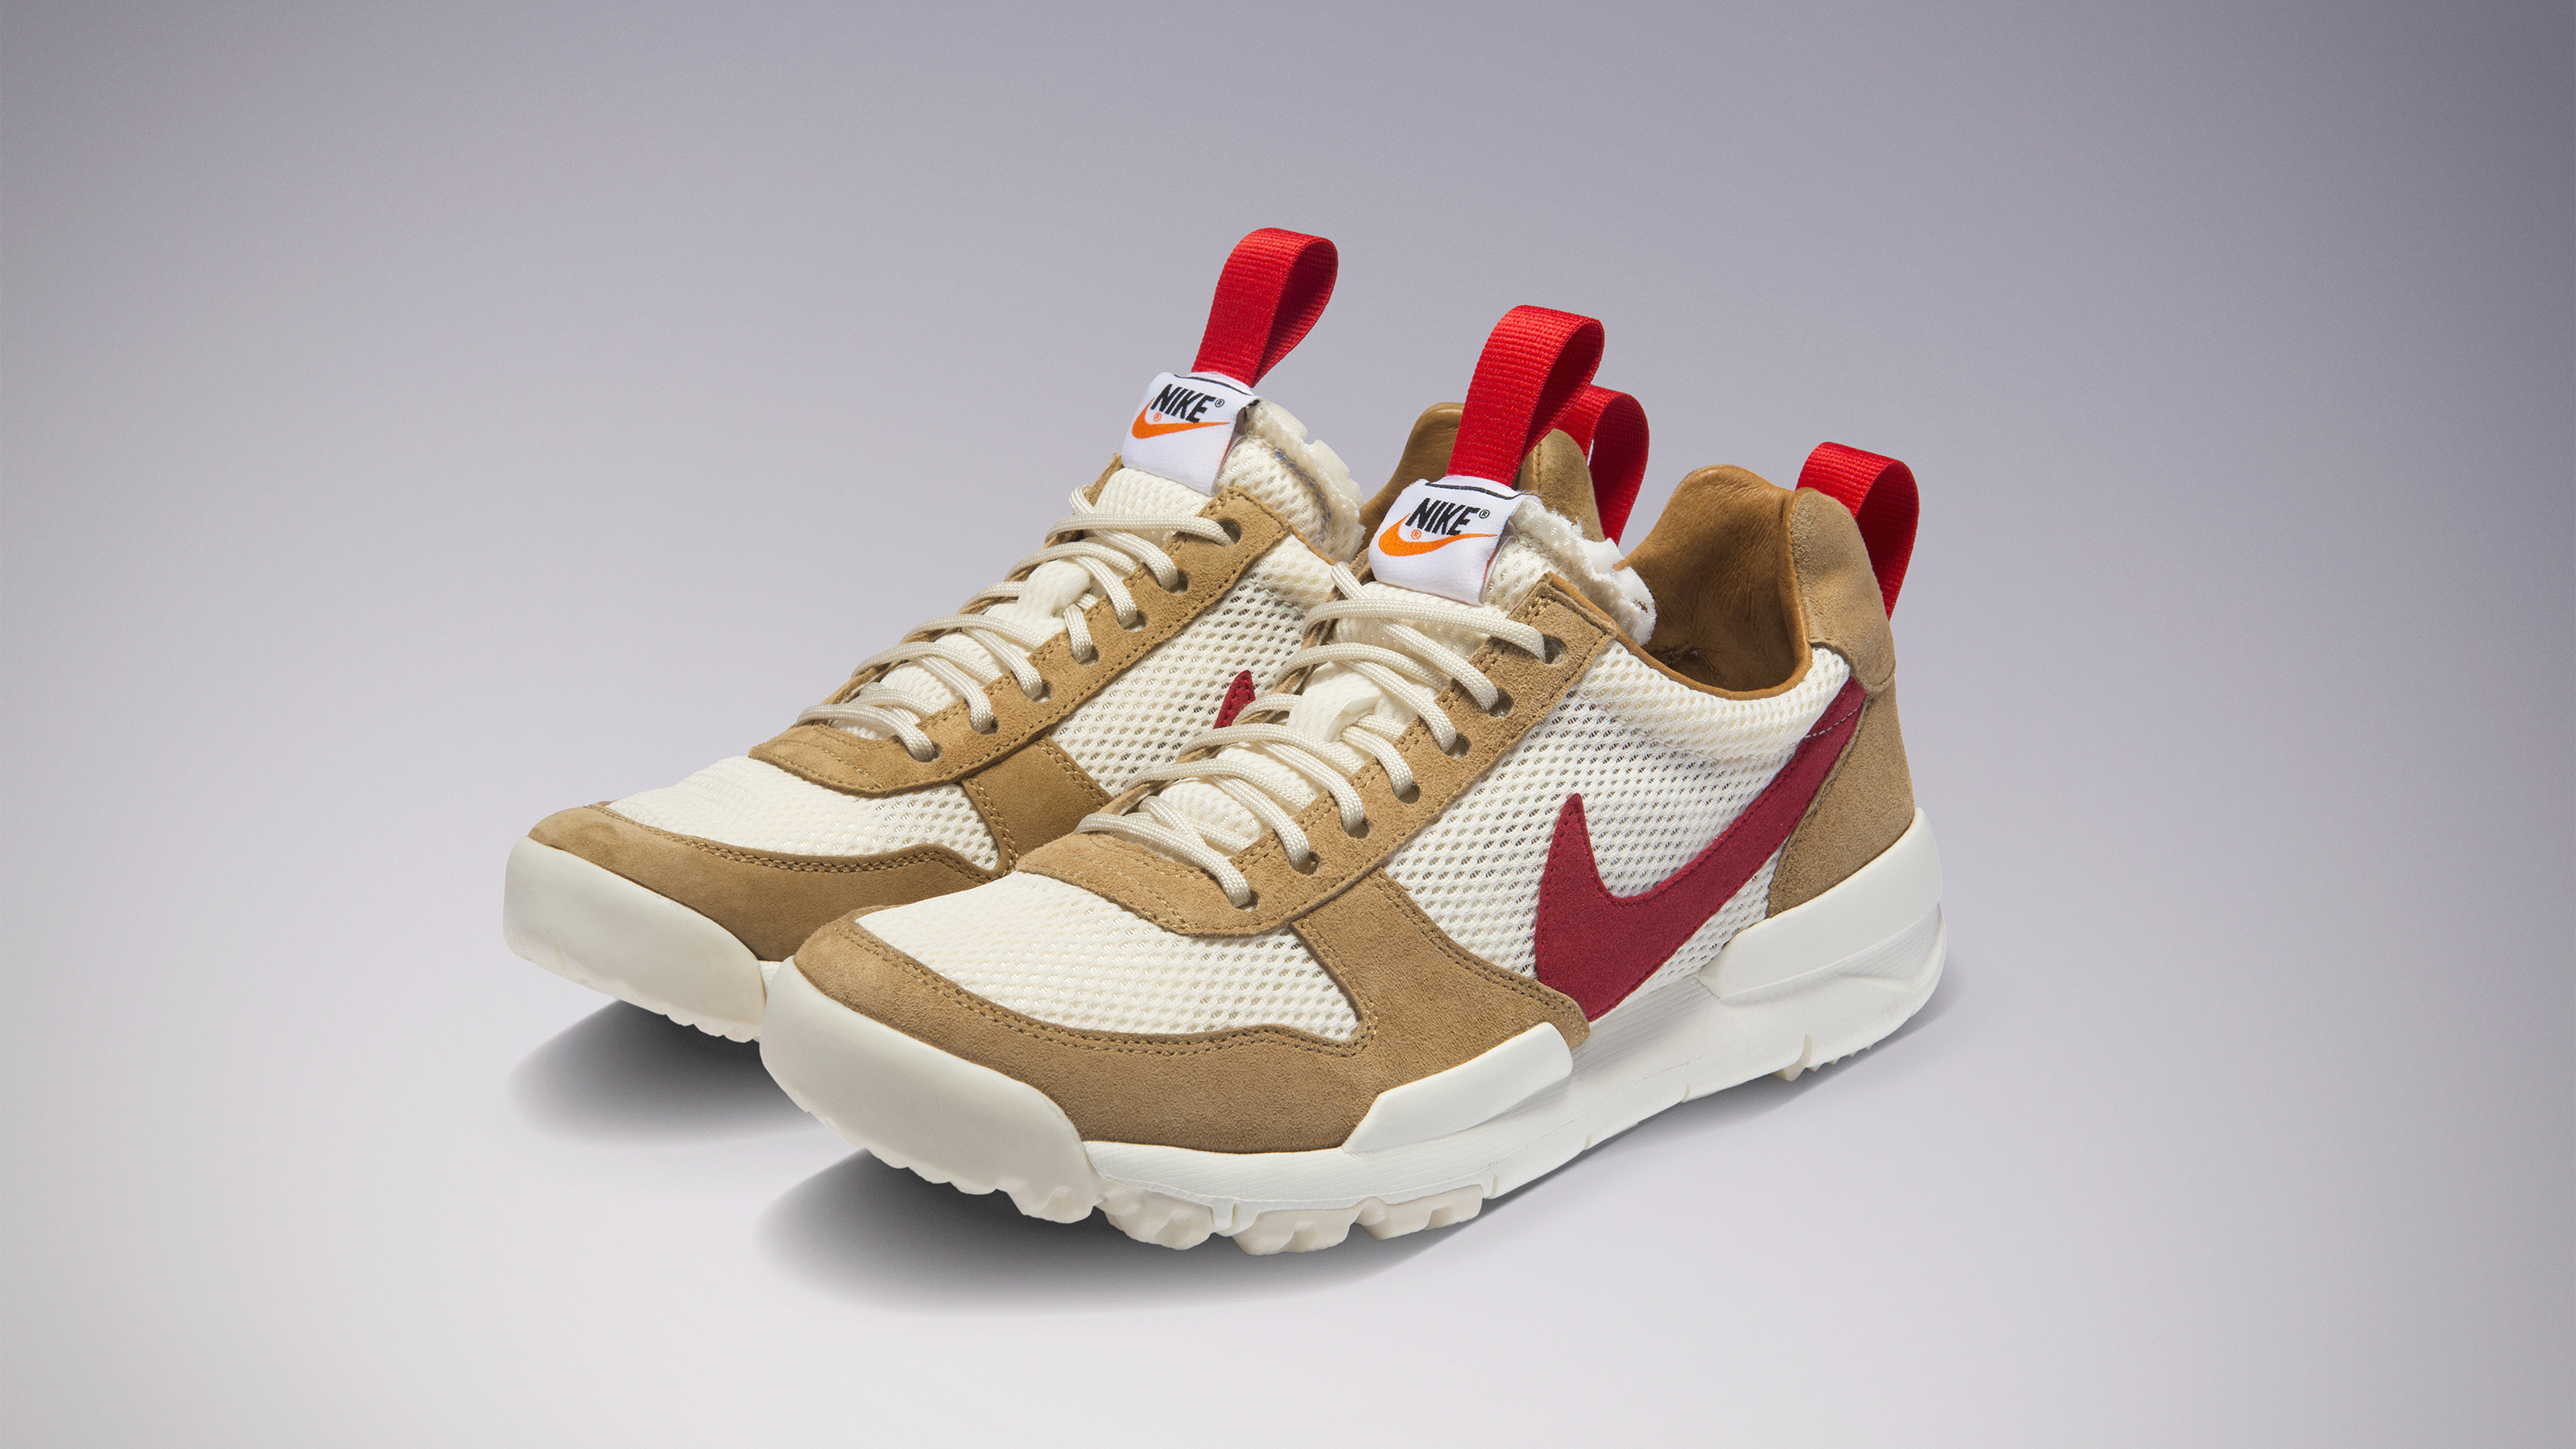 separation shoes 61c1e d856c Tom Sachs x NikeCraft Mars Yard 2.0   Sole Collector